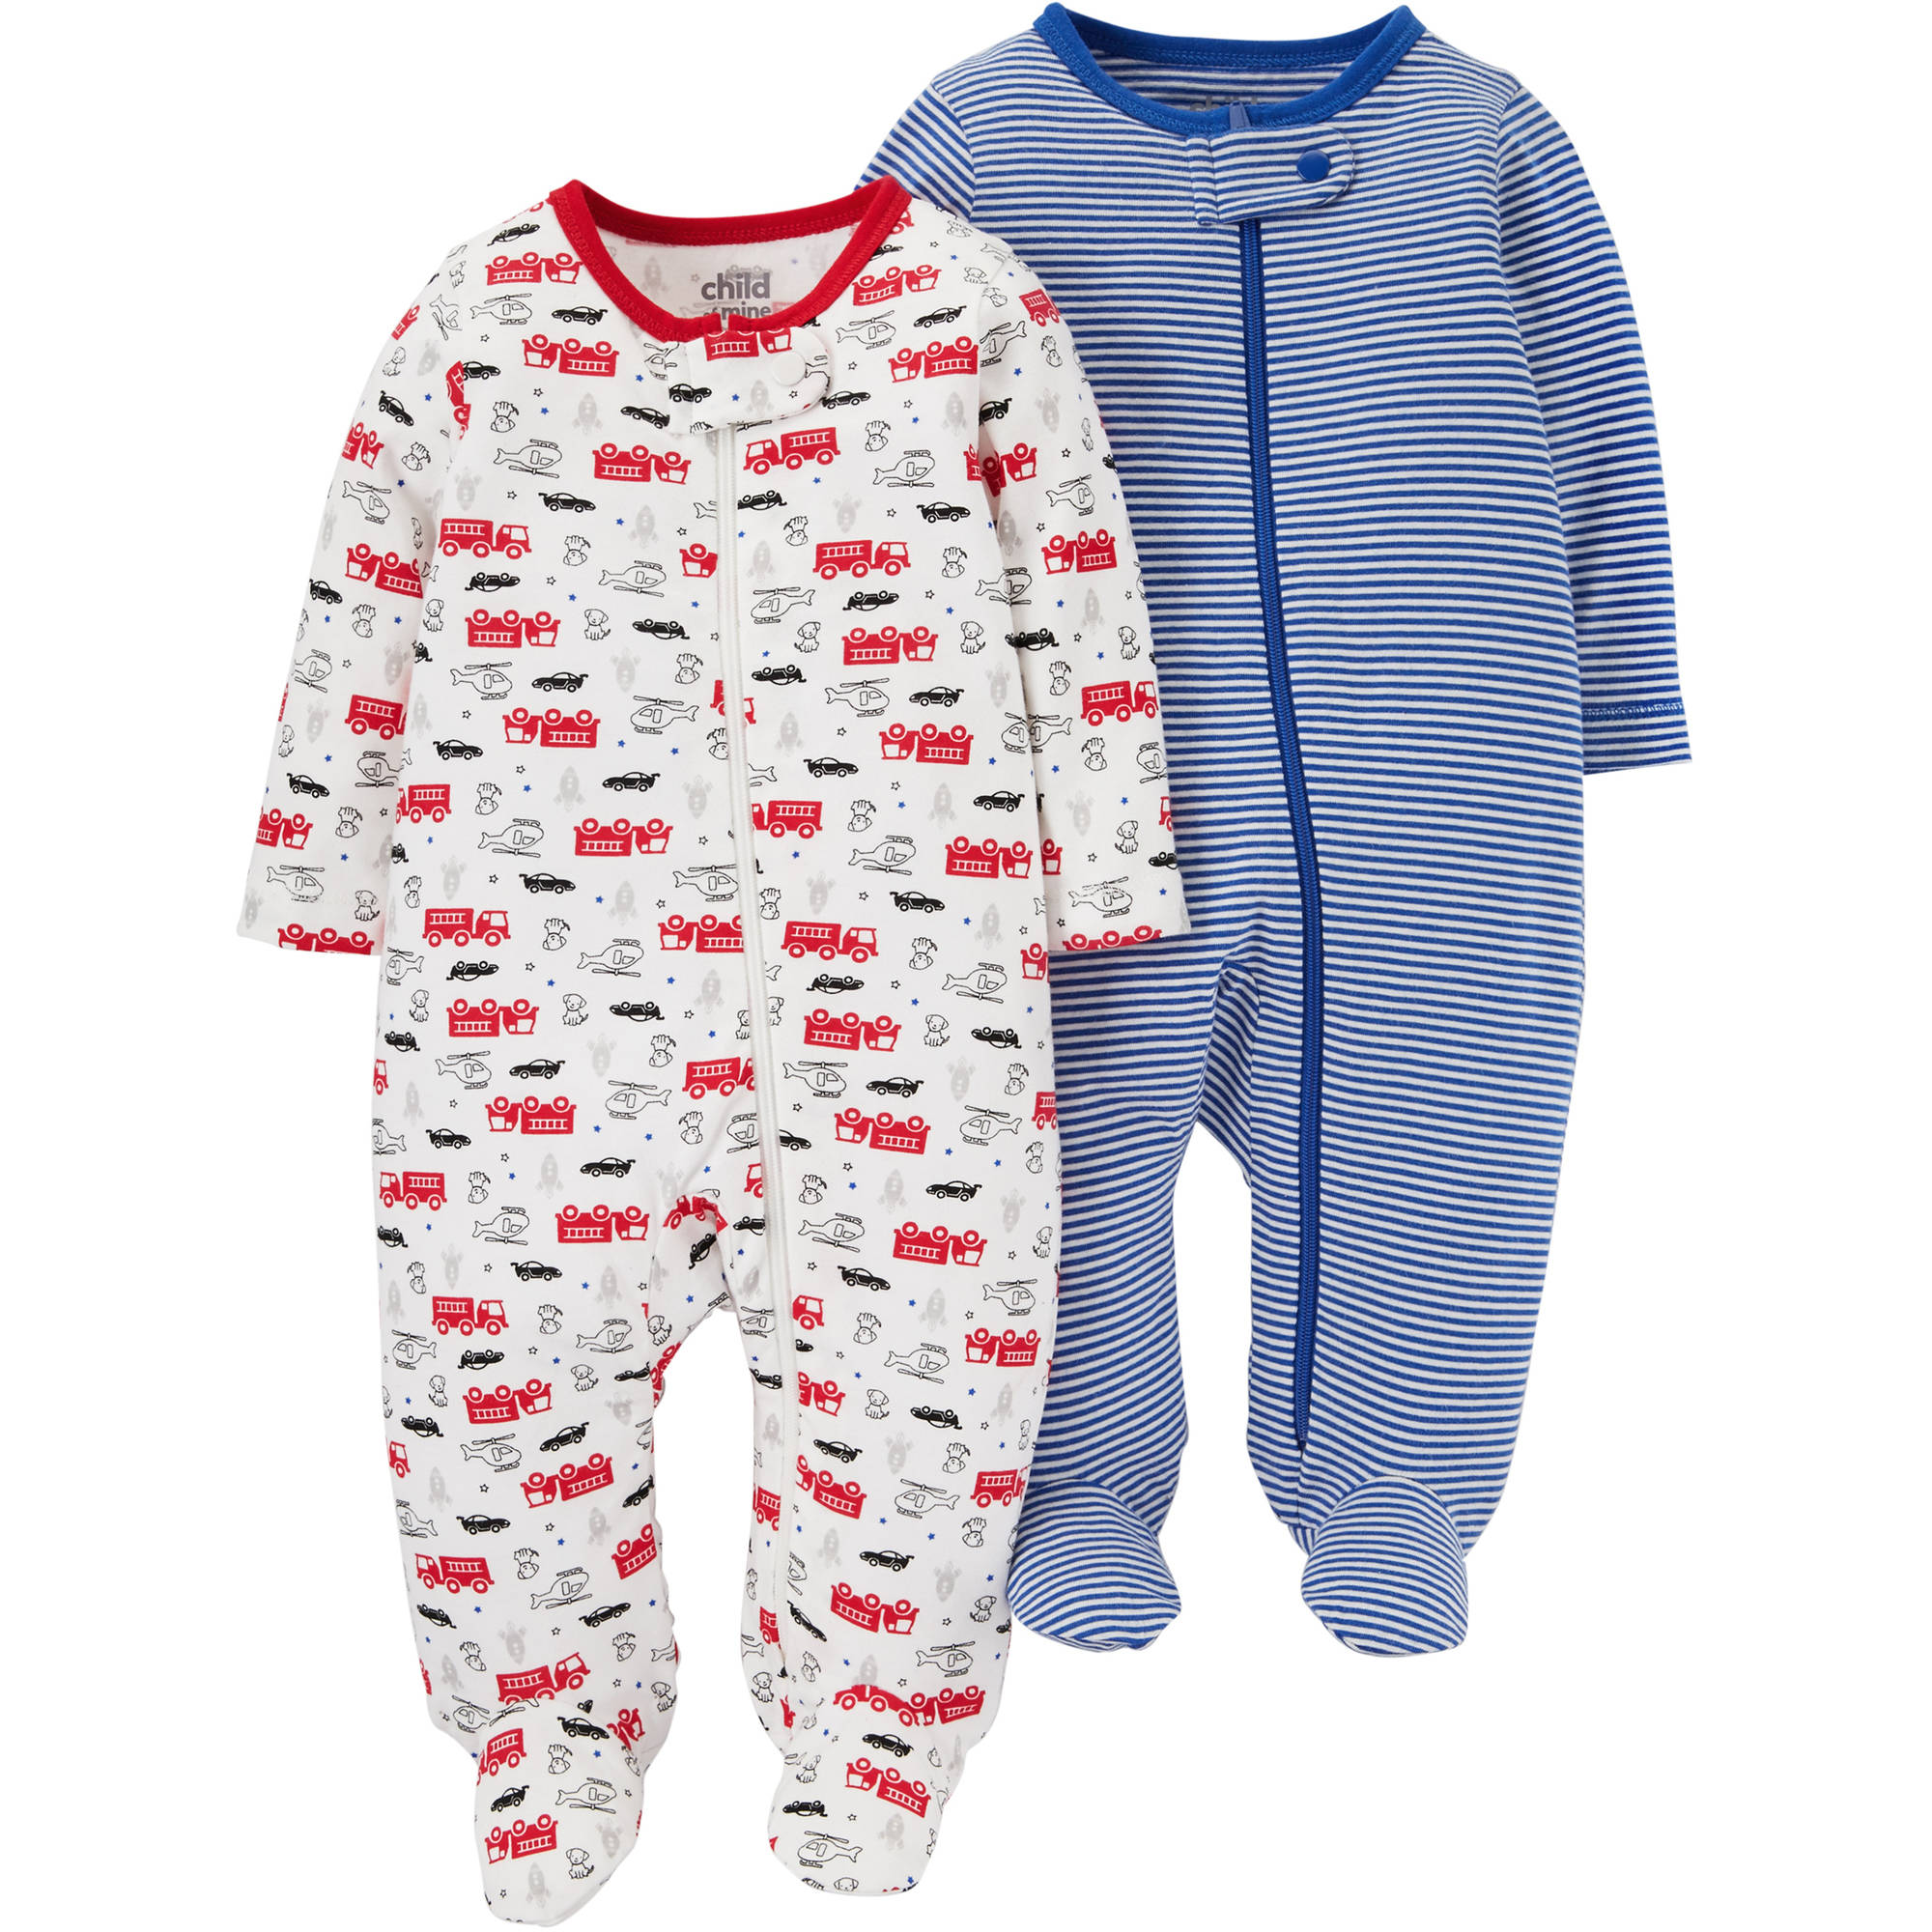 0f0574f1e38a Child of Mine by Carter s Newborn Baby Boy 2 Pack Sleep N Play ...